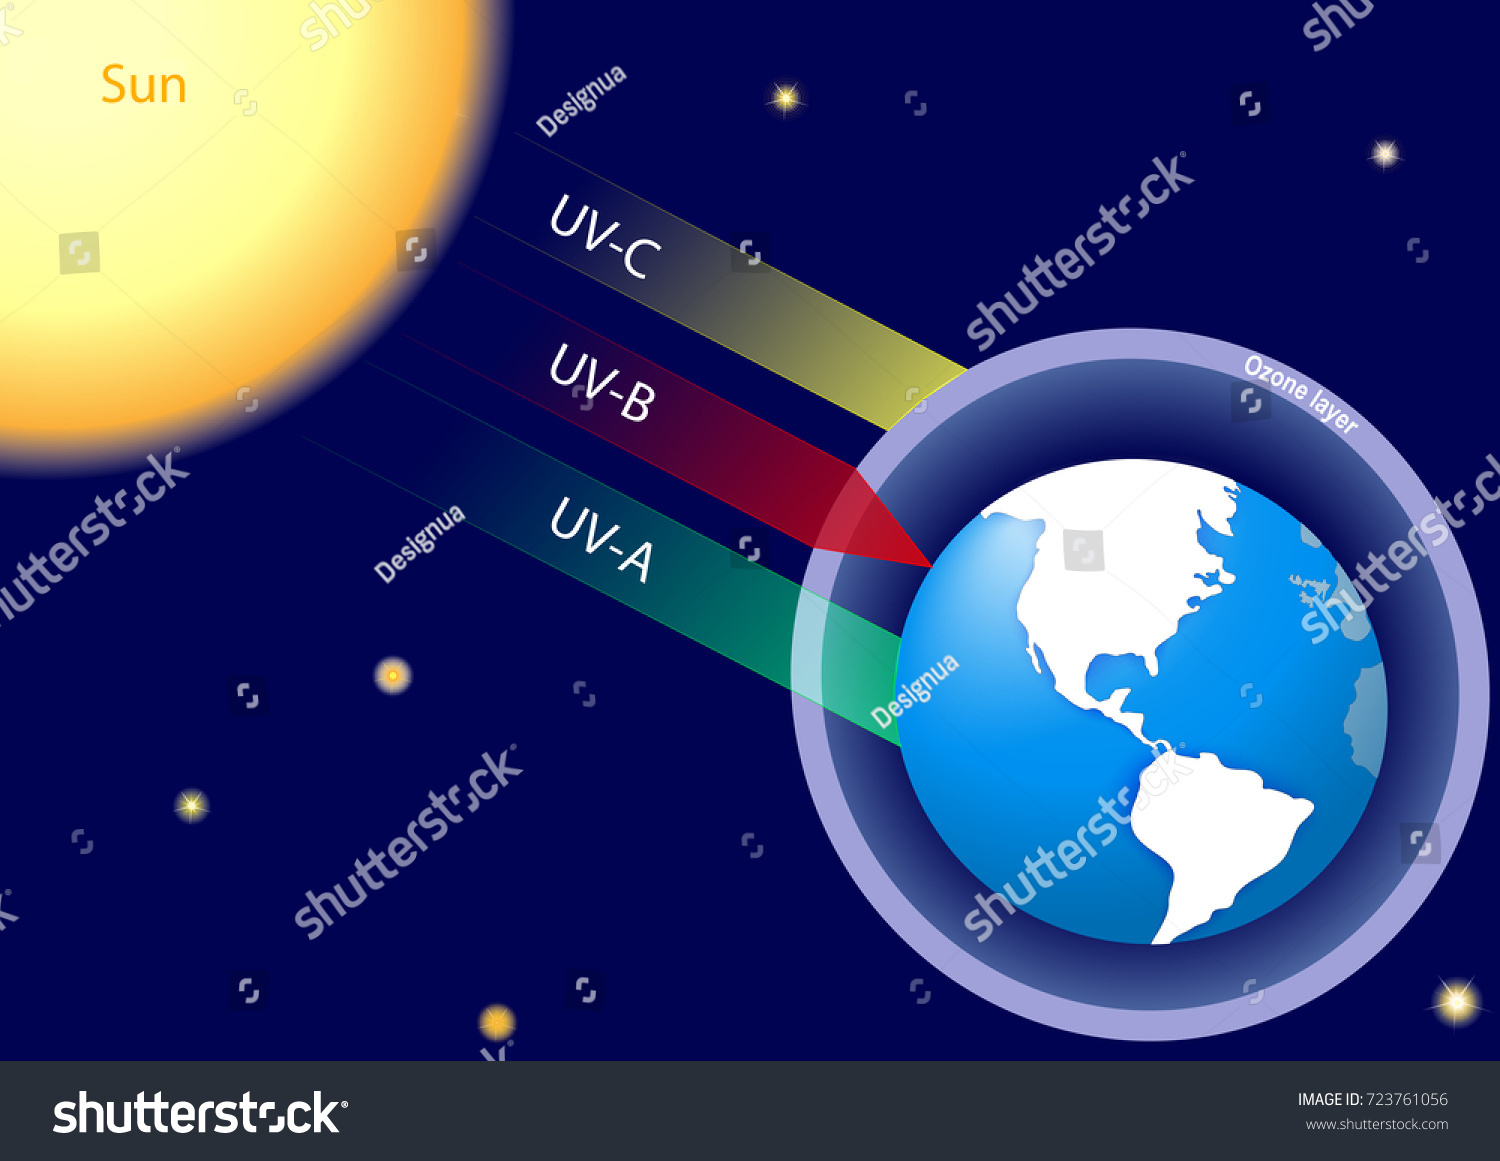 human atmosphere and earth The following earth science discussion questions will be addressed: 1) explain the natural greenhouse effect in the earth's atmosphere and how humans might be contributing to its effect.